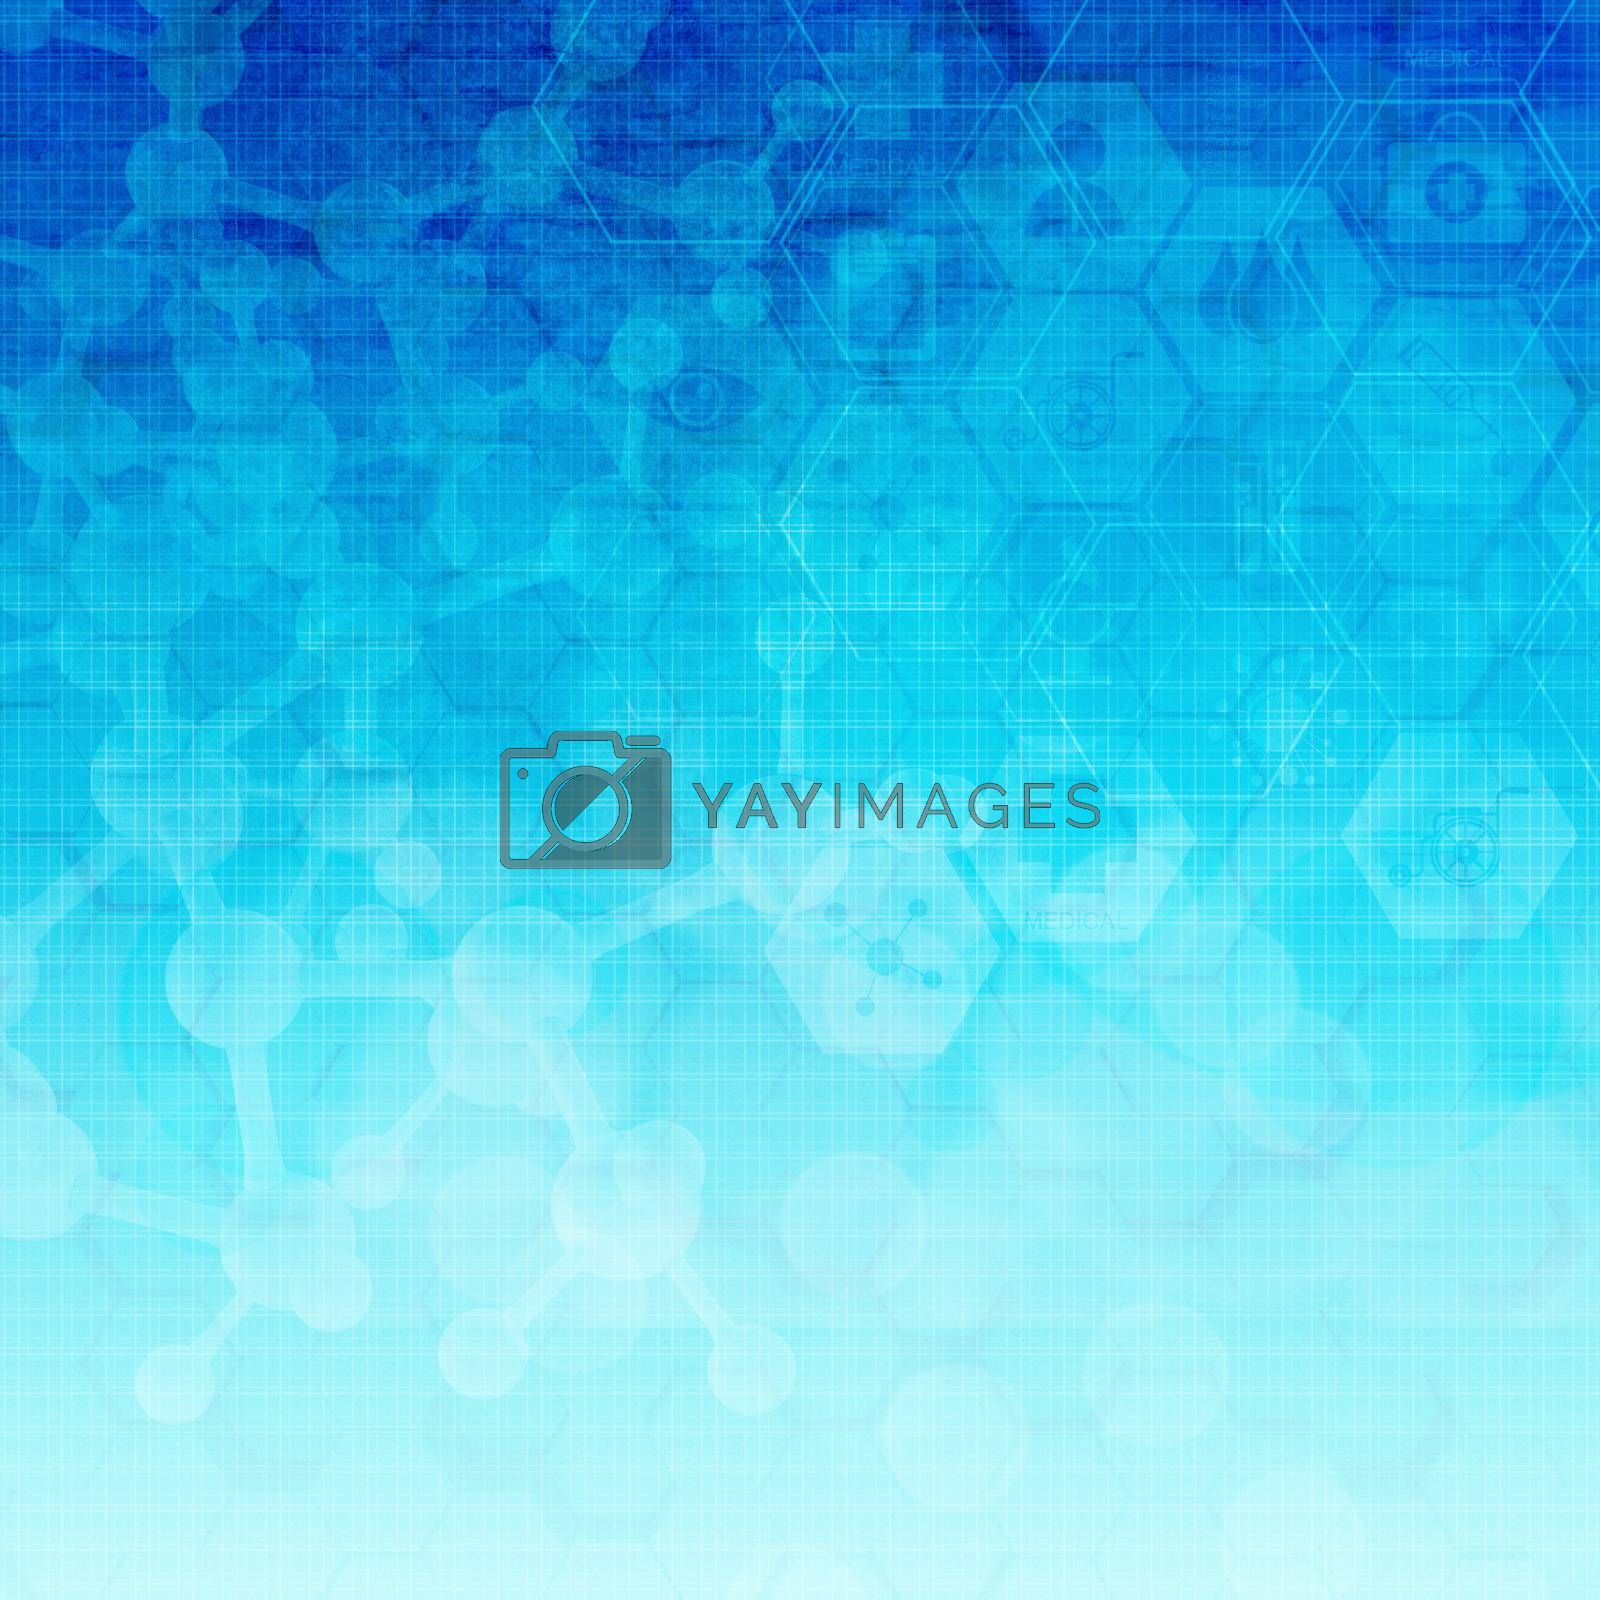 Royalty free image of Abstract metal  molecules medical background  by everythingpossible